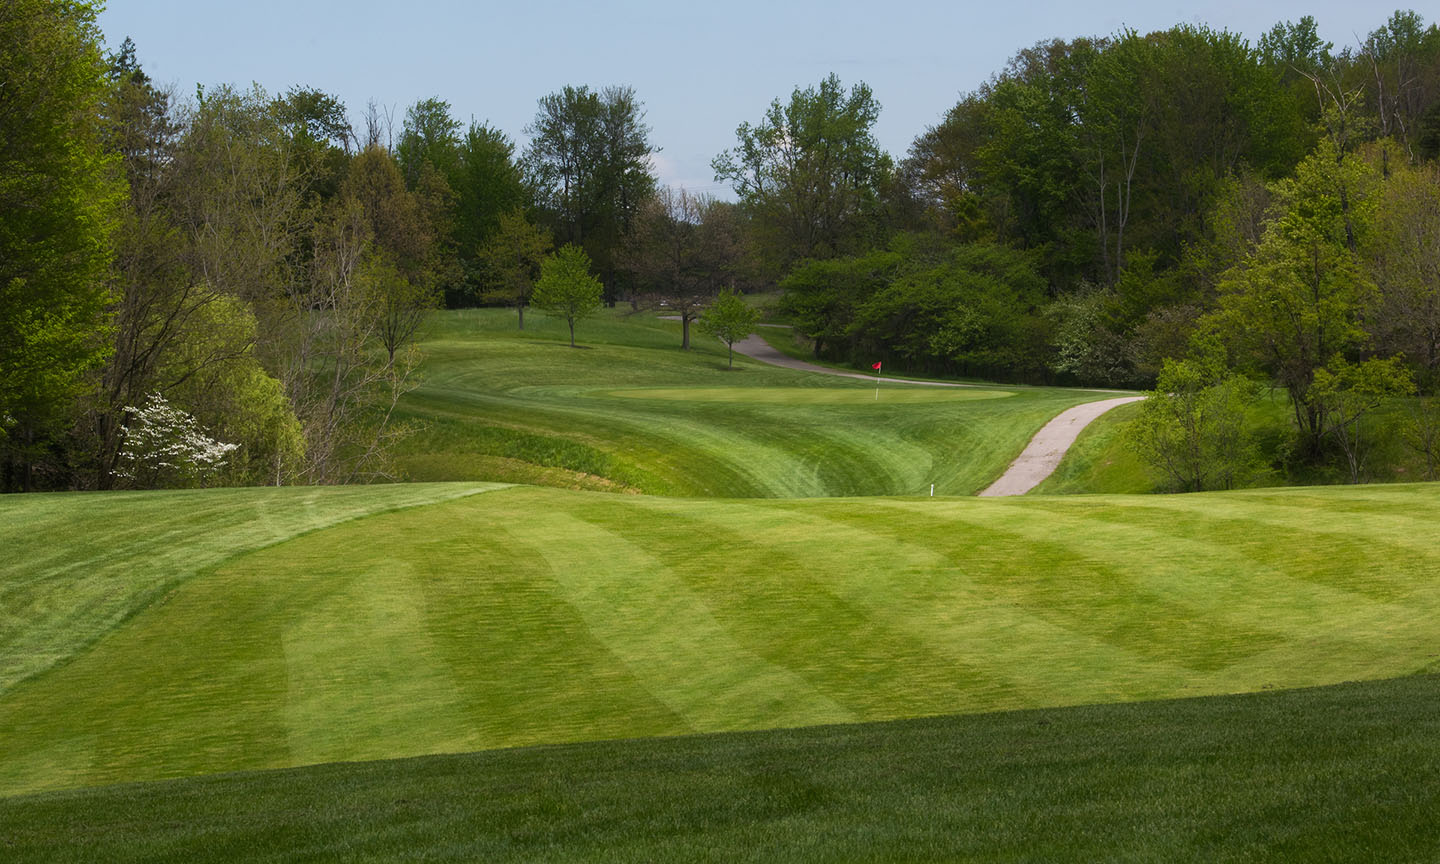 Shawnee Hills Golf Course